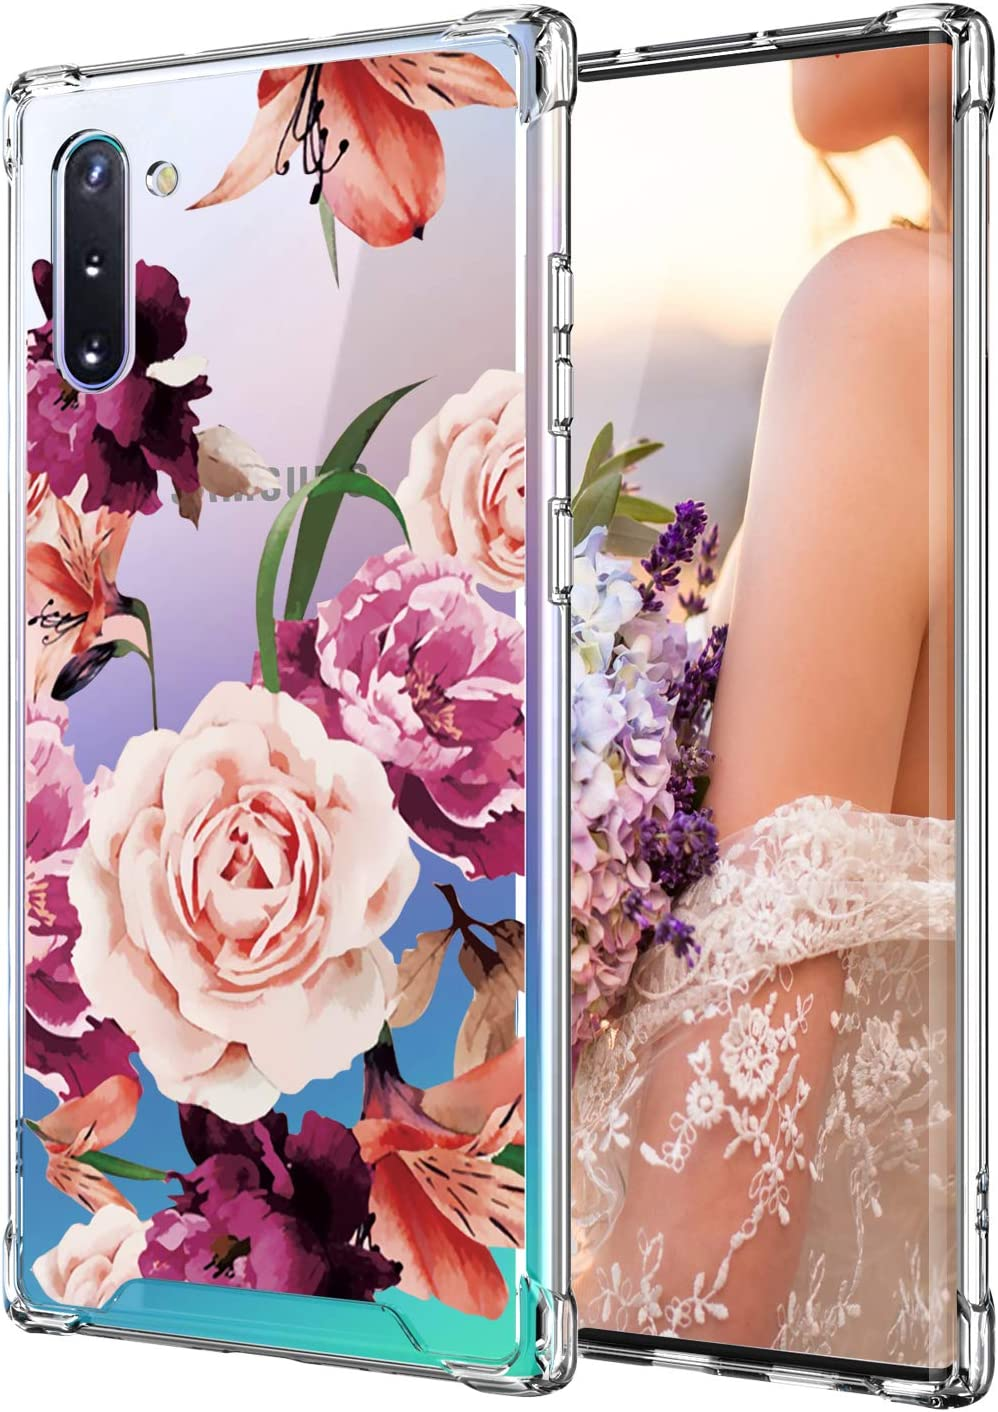 Cutebe Case for Galaxy Note 10, Shockproof Series Hard PC+ TPU Bumper Protective Case for Samsung Galaxy Note 10 2019 Release Floral Design